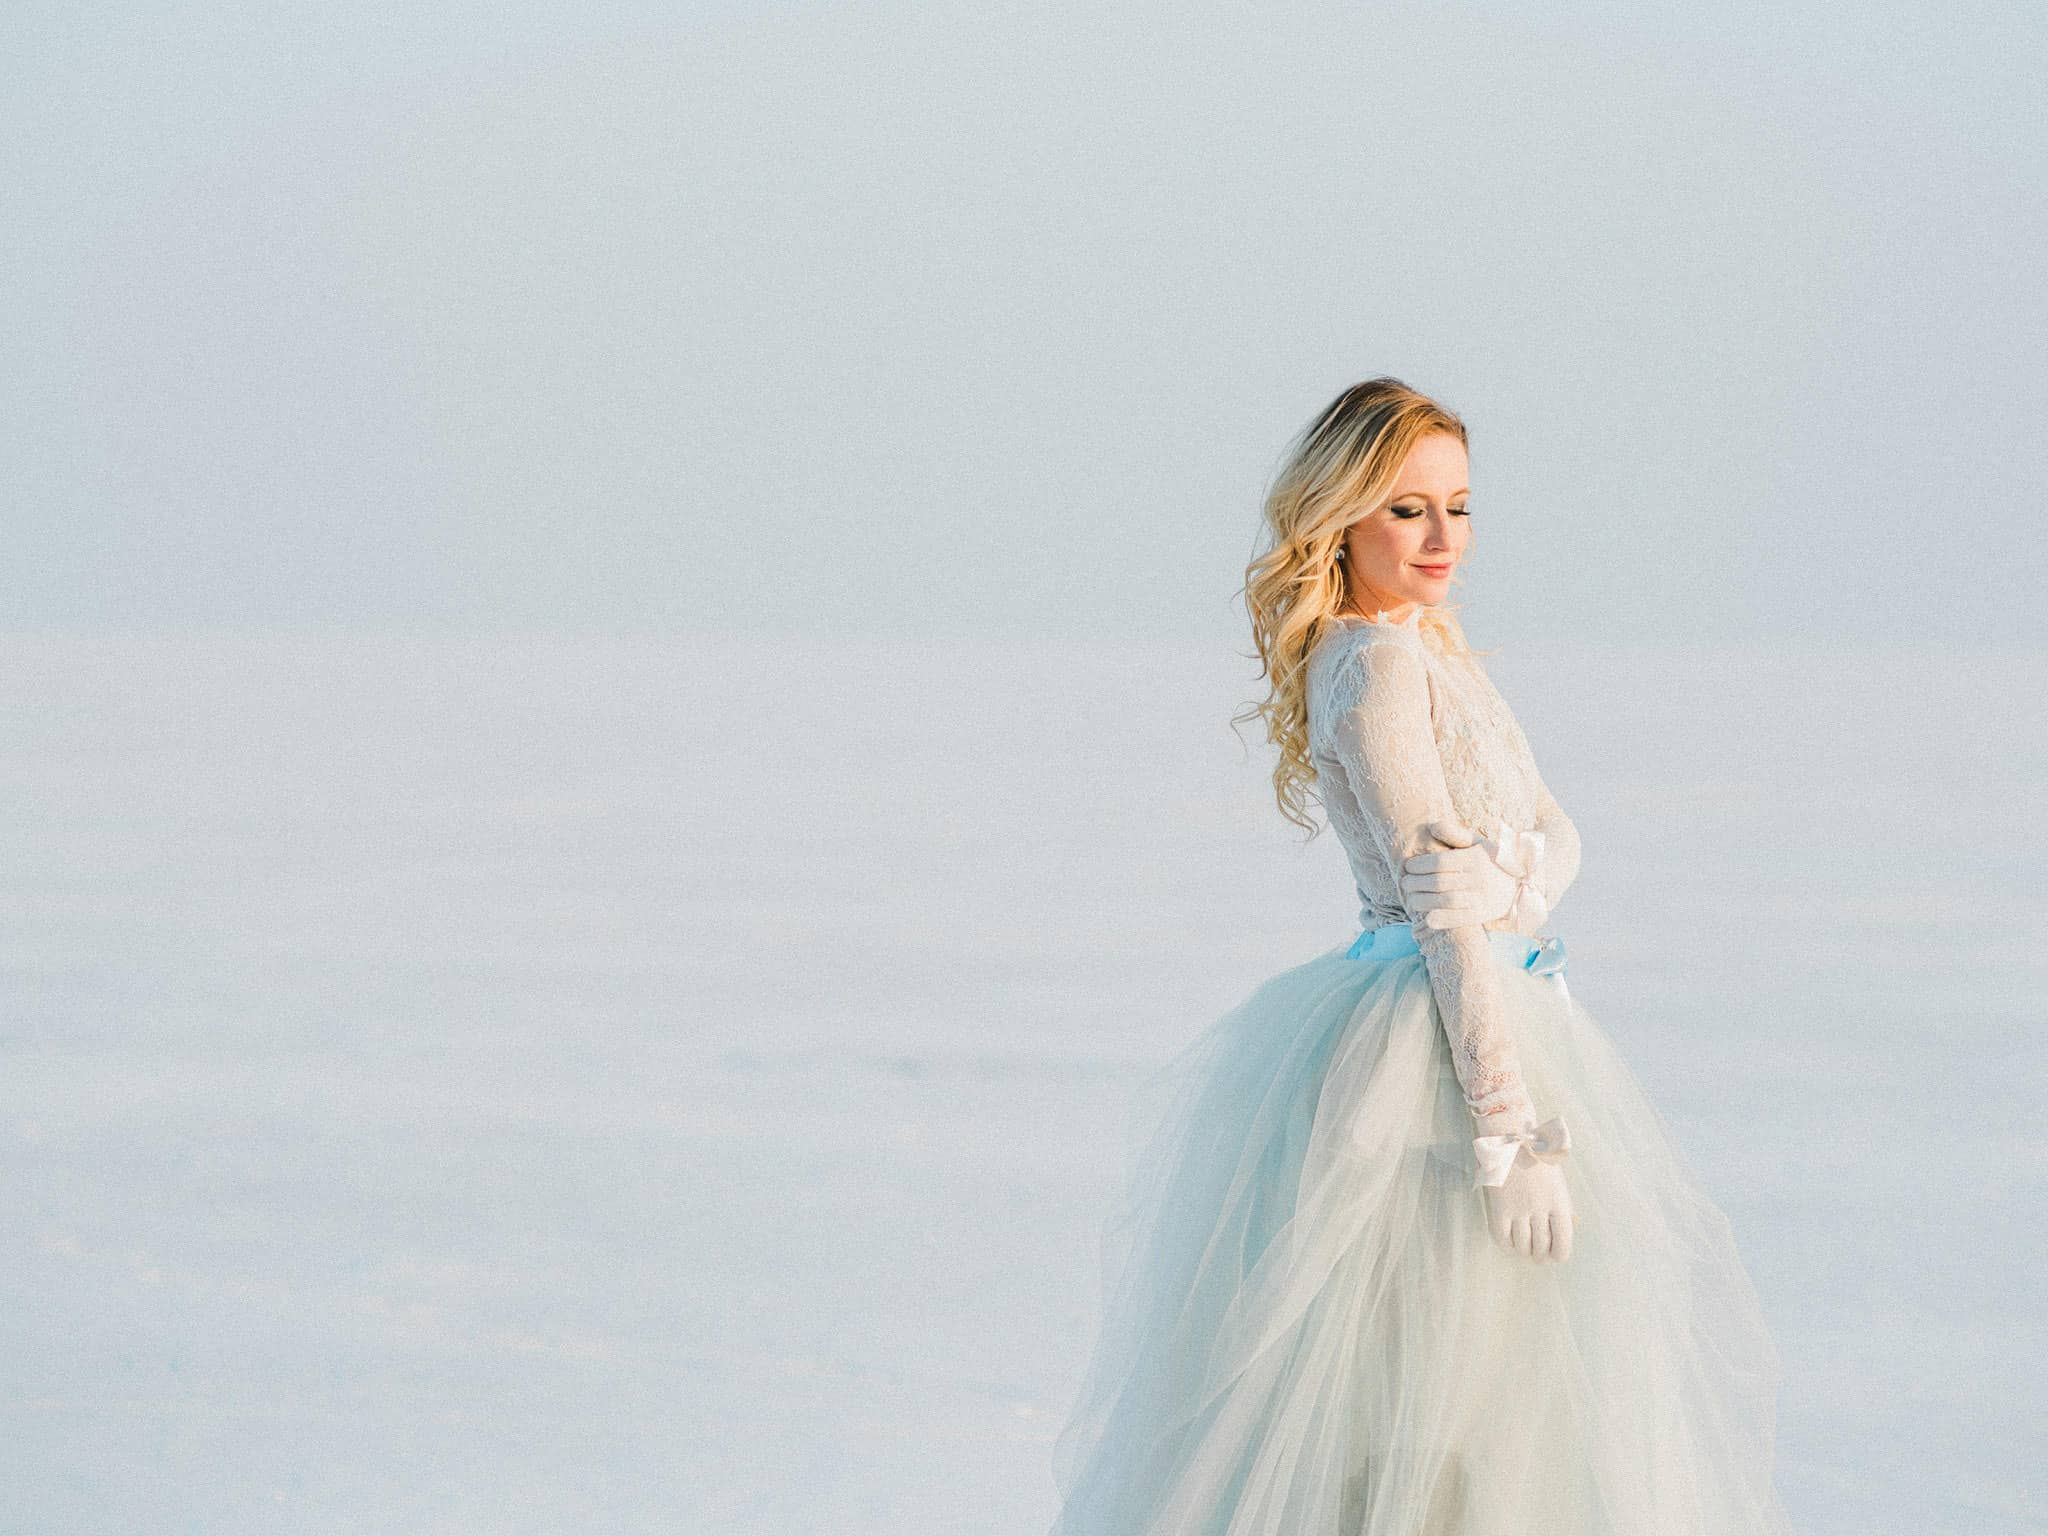 32_wedoverhills_bride_in_snow